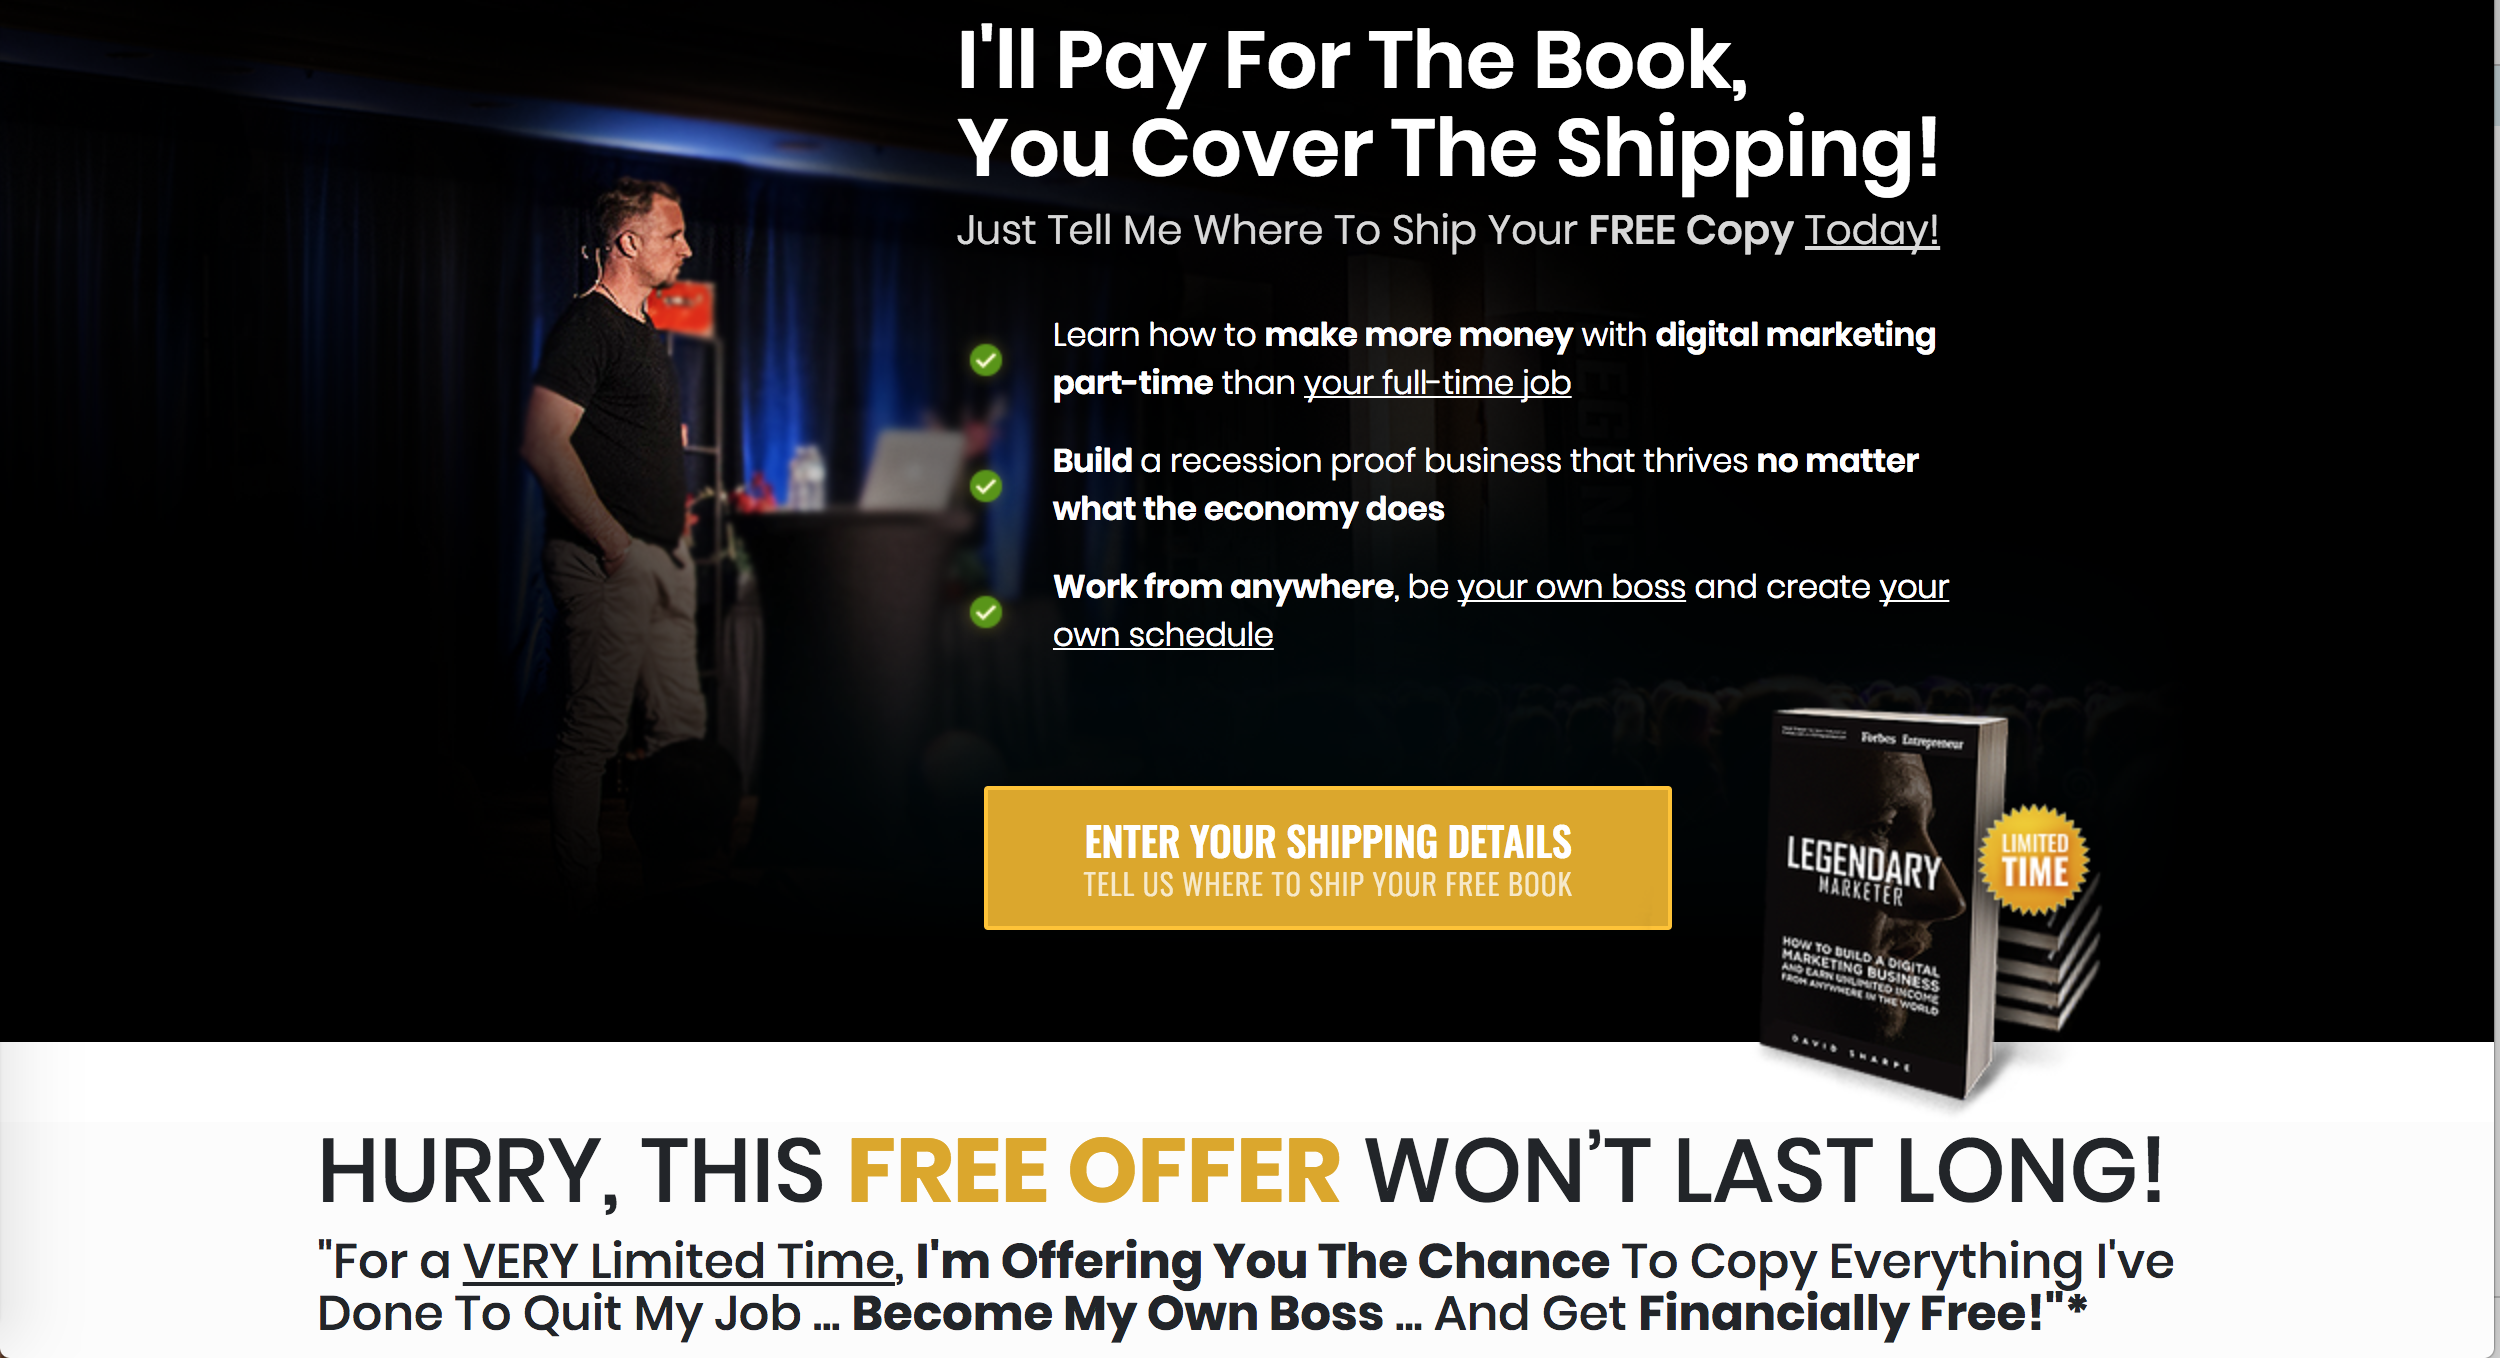 Buy Legendary Marketer Internet Marketing Program For Under 400